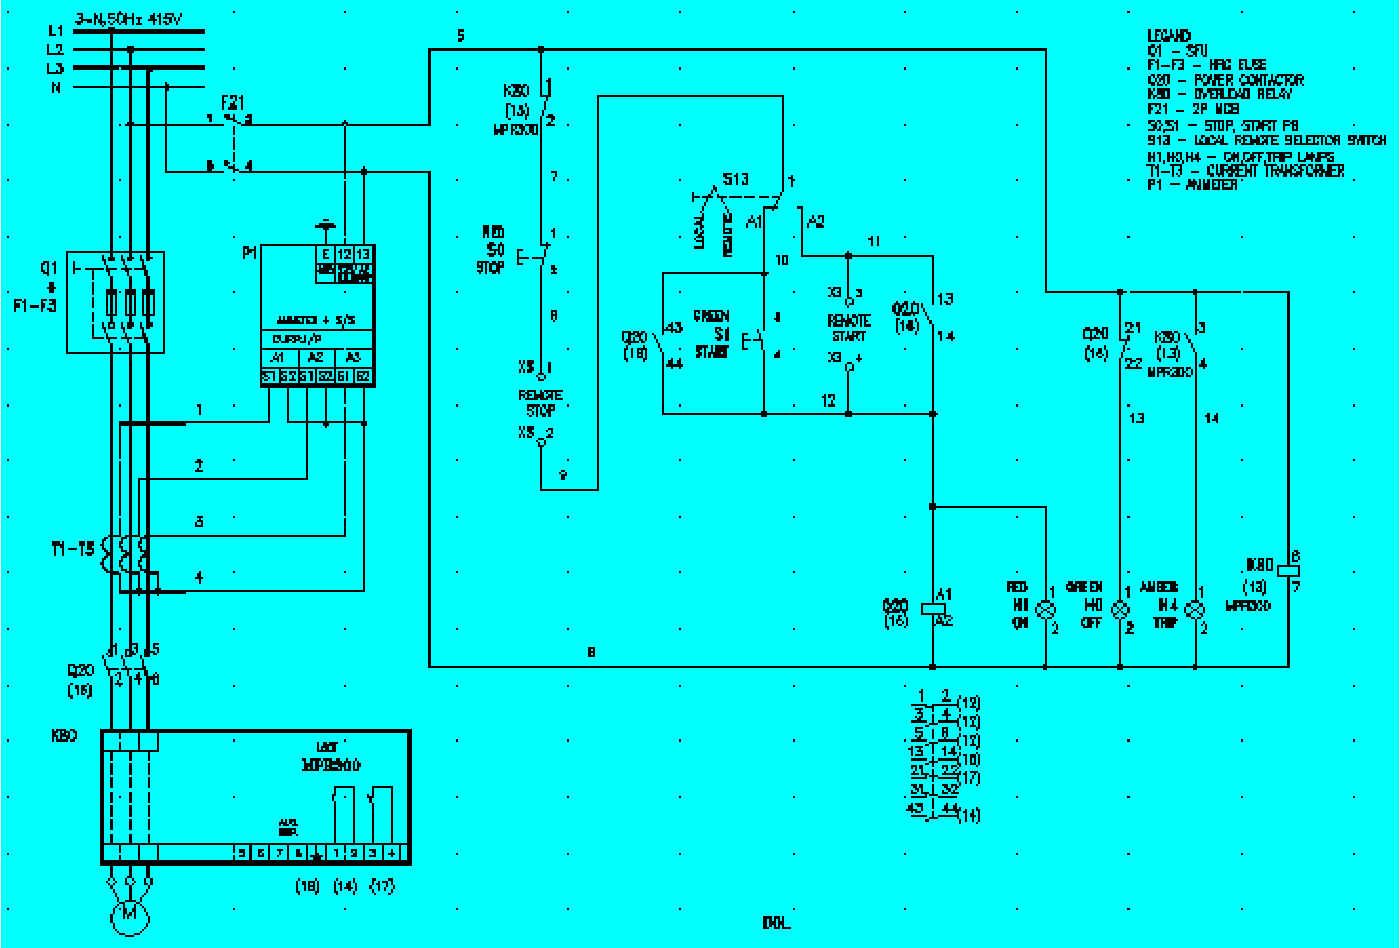 Sipro Tech - Switchboard and control Panel Design Service on how does a microwave work diagram, automotive generator diagram, generator connection diagram, generator rotor diagram, generator radiator diagram, electric generator diagram, generator exciter diagram, generator building diagram, generator relay diagram, generator schematic diagram, generator solenoid diagram, home generator diagram, generator fuel system diagram, generator plug diagram, generator wiring connectors, generator hook up diagram, dc armature winding diagram, rv trailer wire diagram, generator oil diagram, circuit diagram,